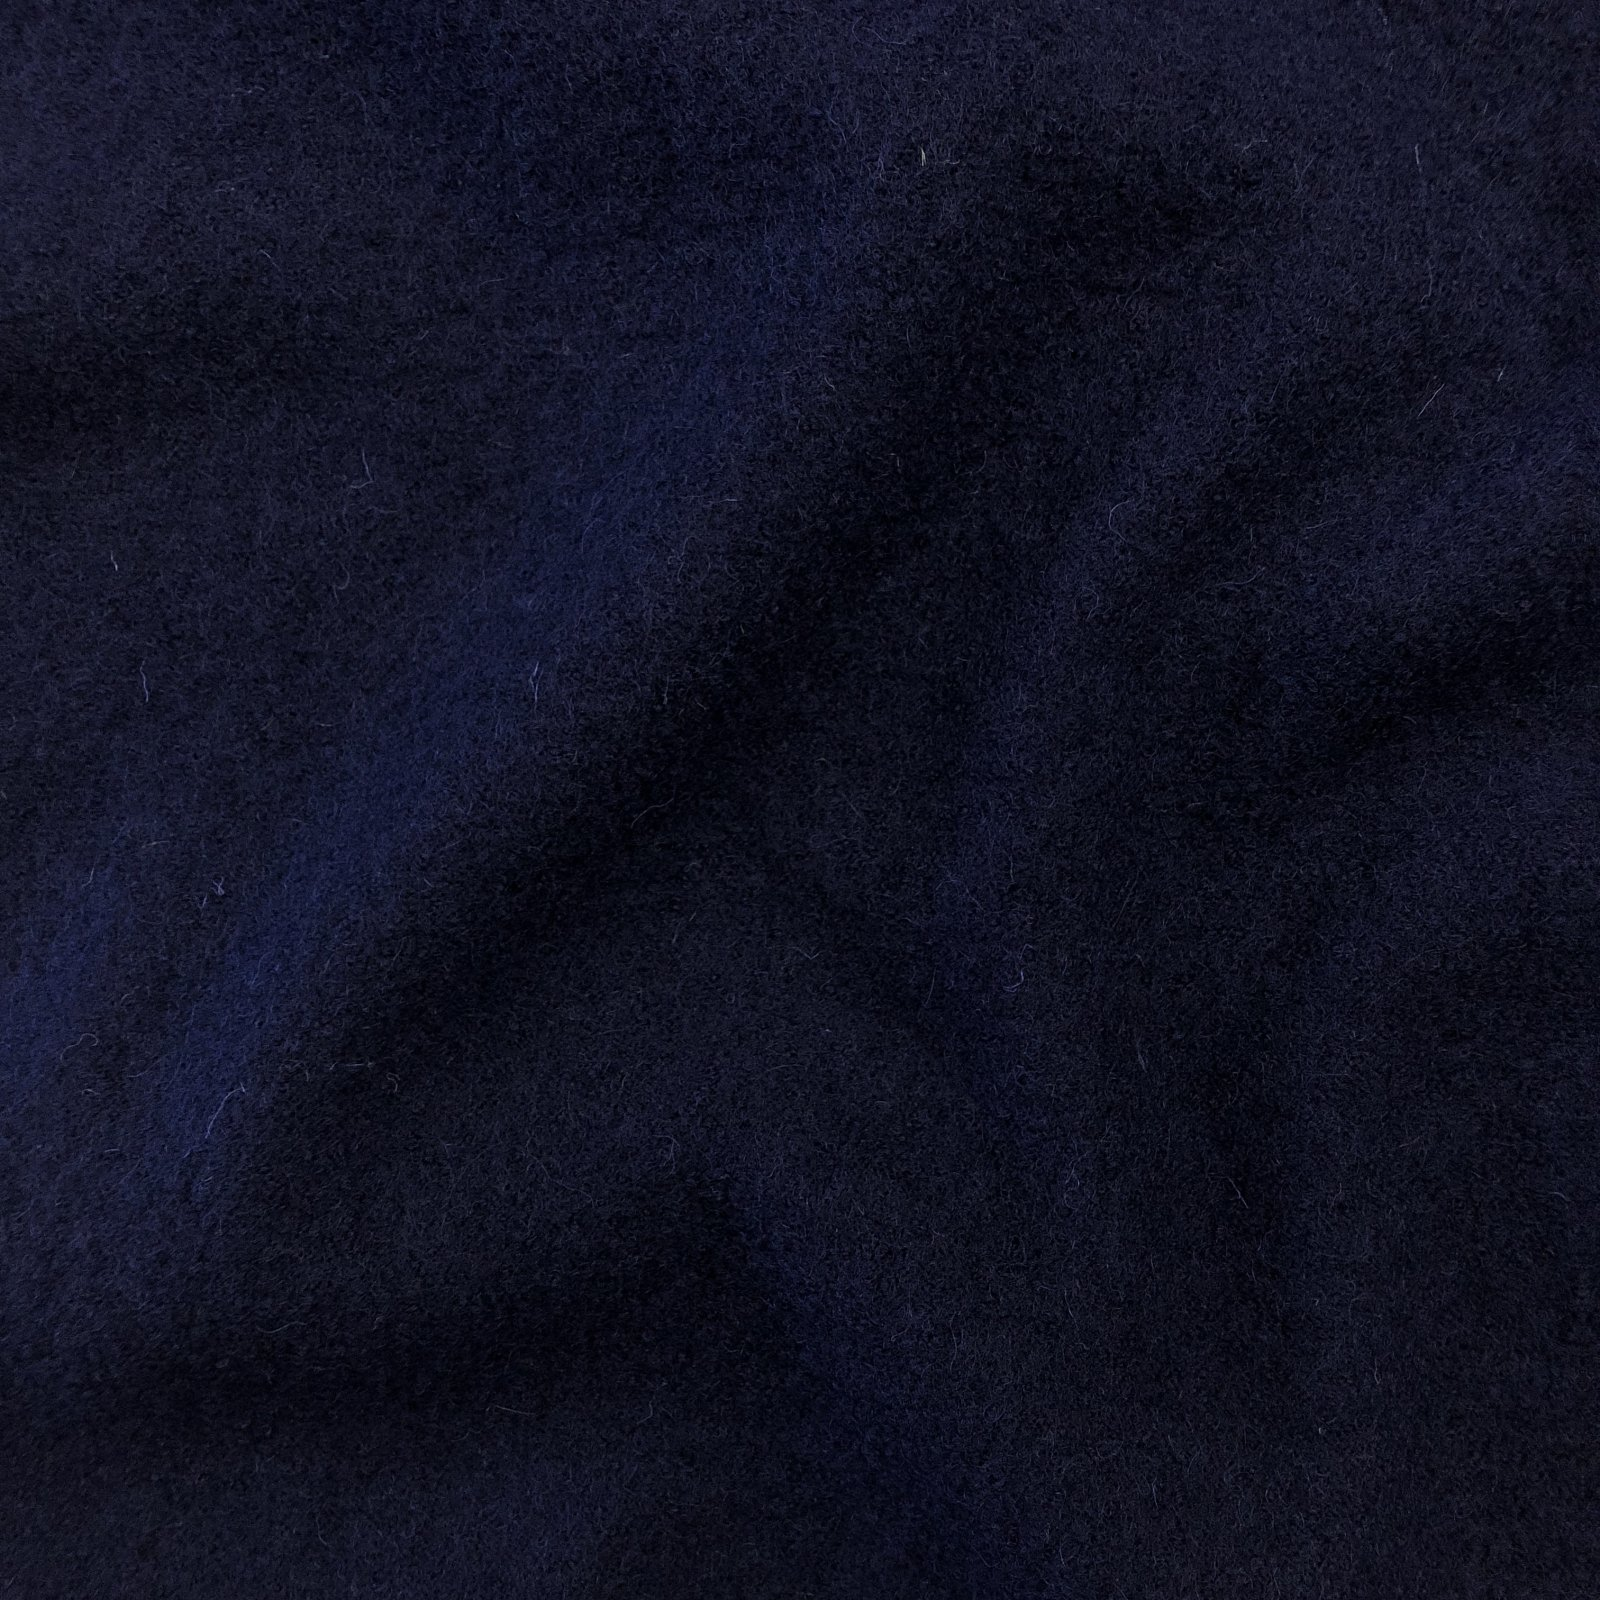 Boiled Wool - Indigo